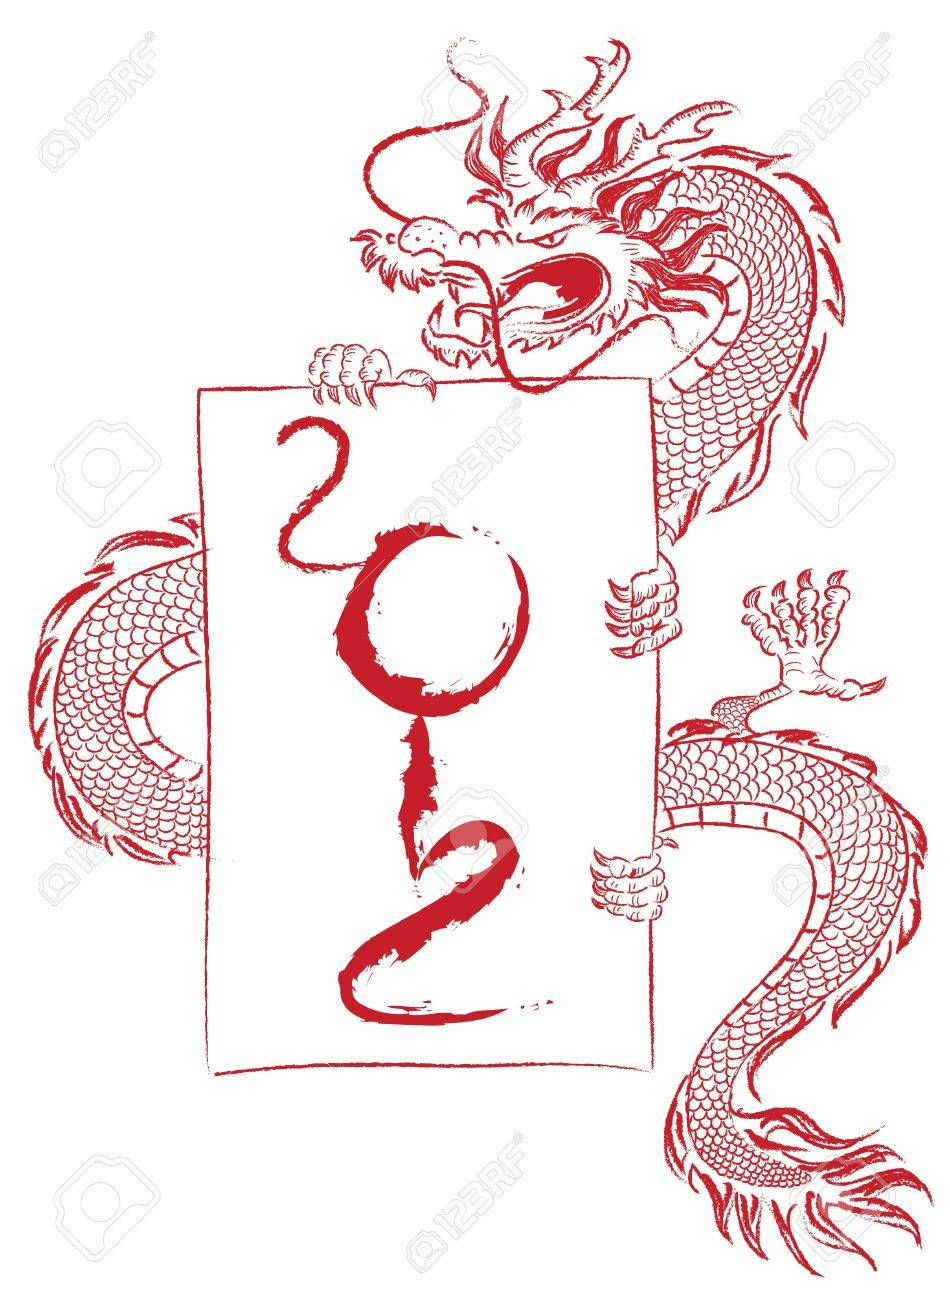 Chinese Calligraphy 2012 - Year of Dragon Design Stock Photo - 11570015